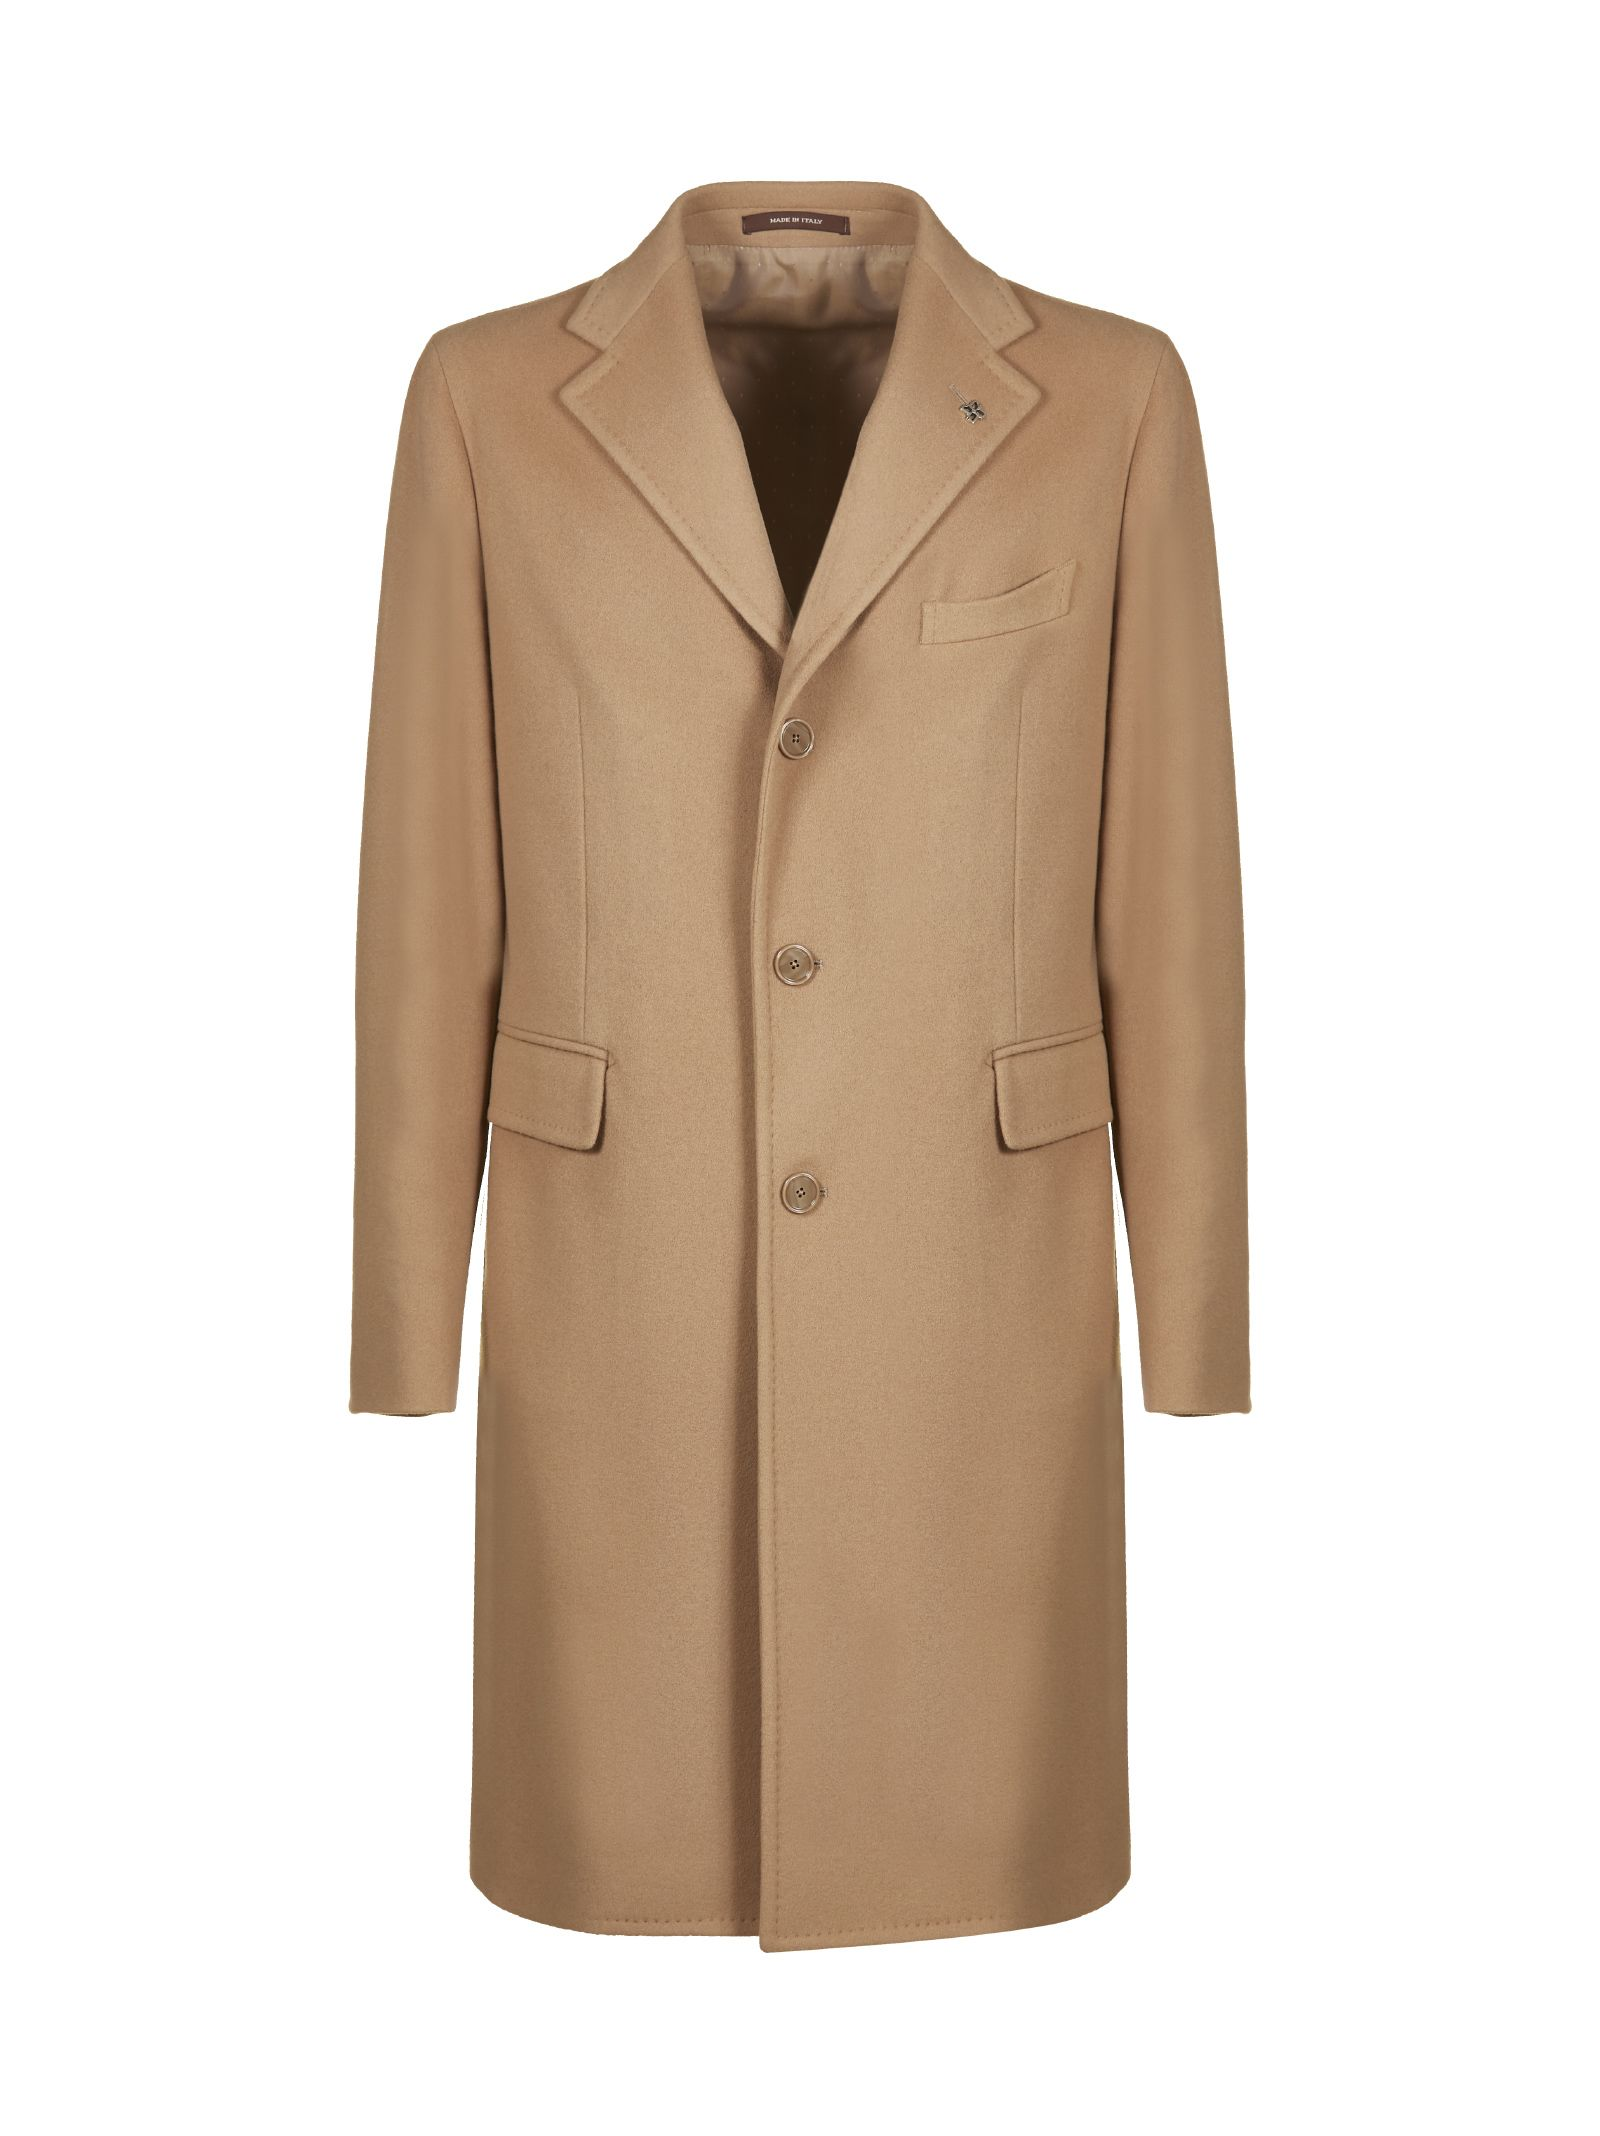 Tagliatore Single Breasted Fitted Coat